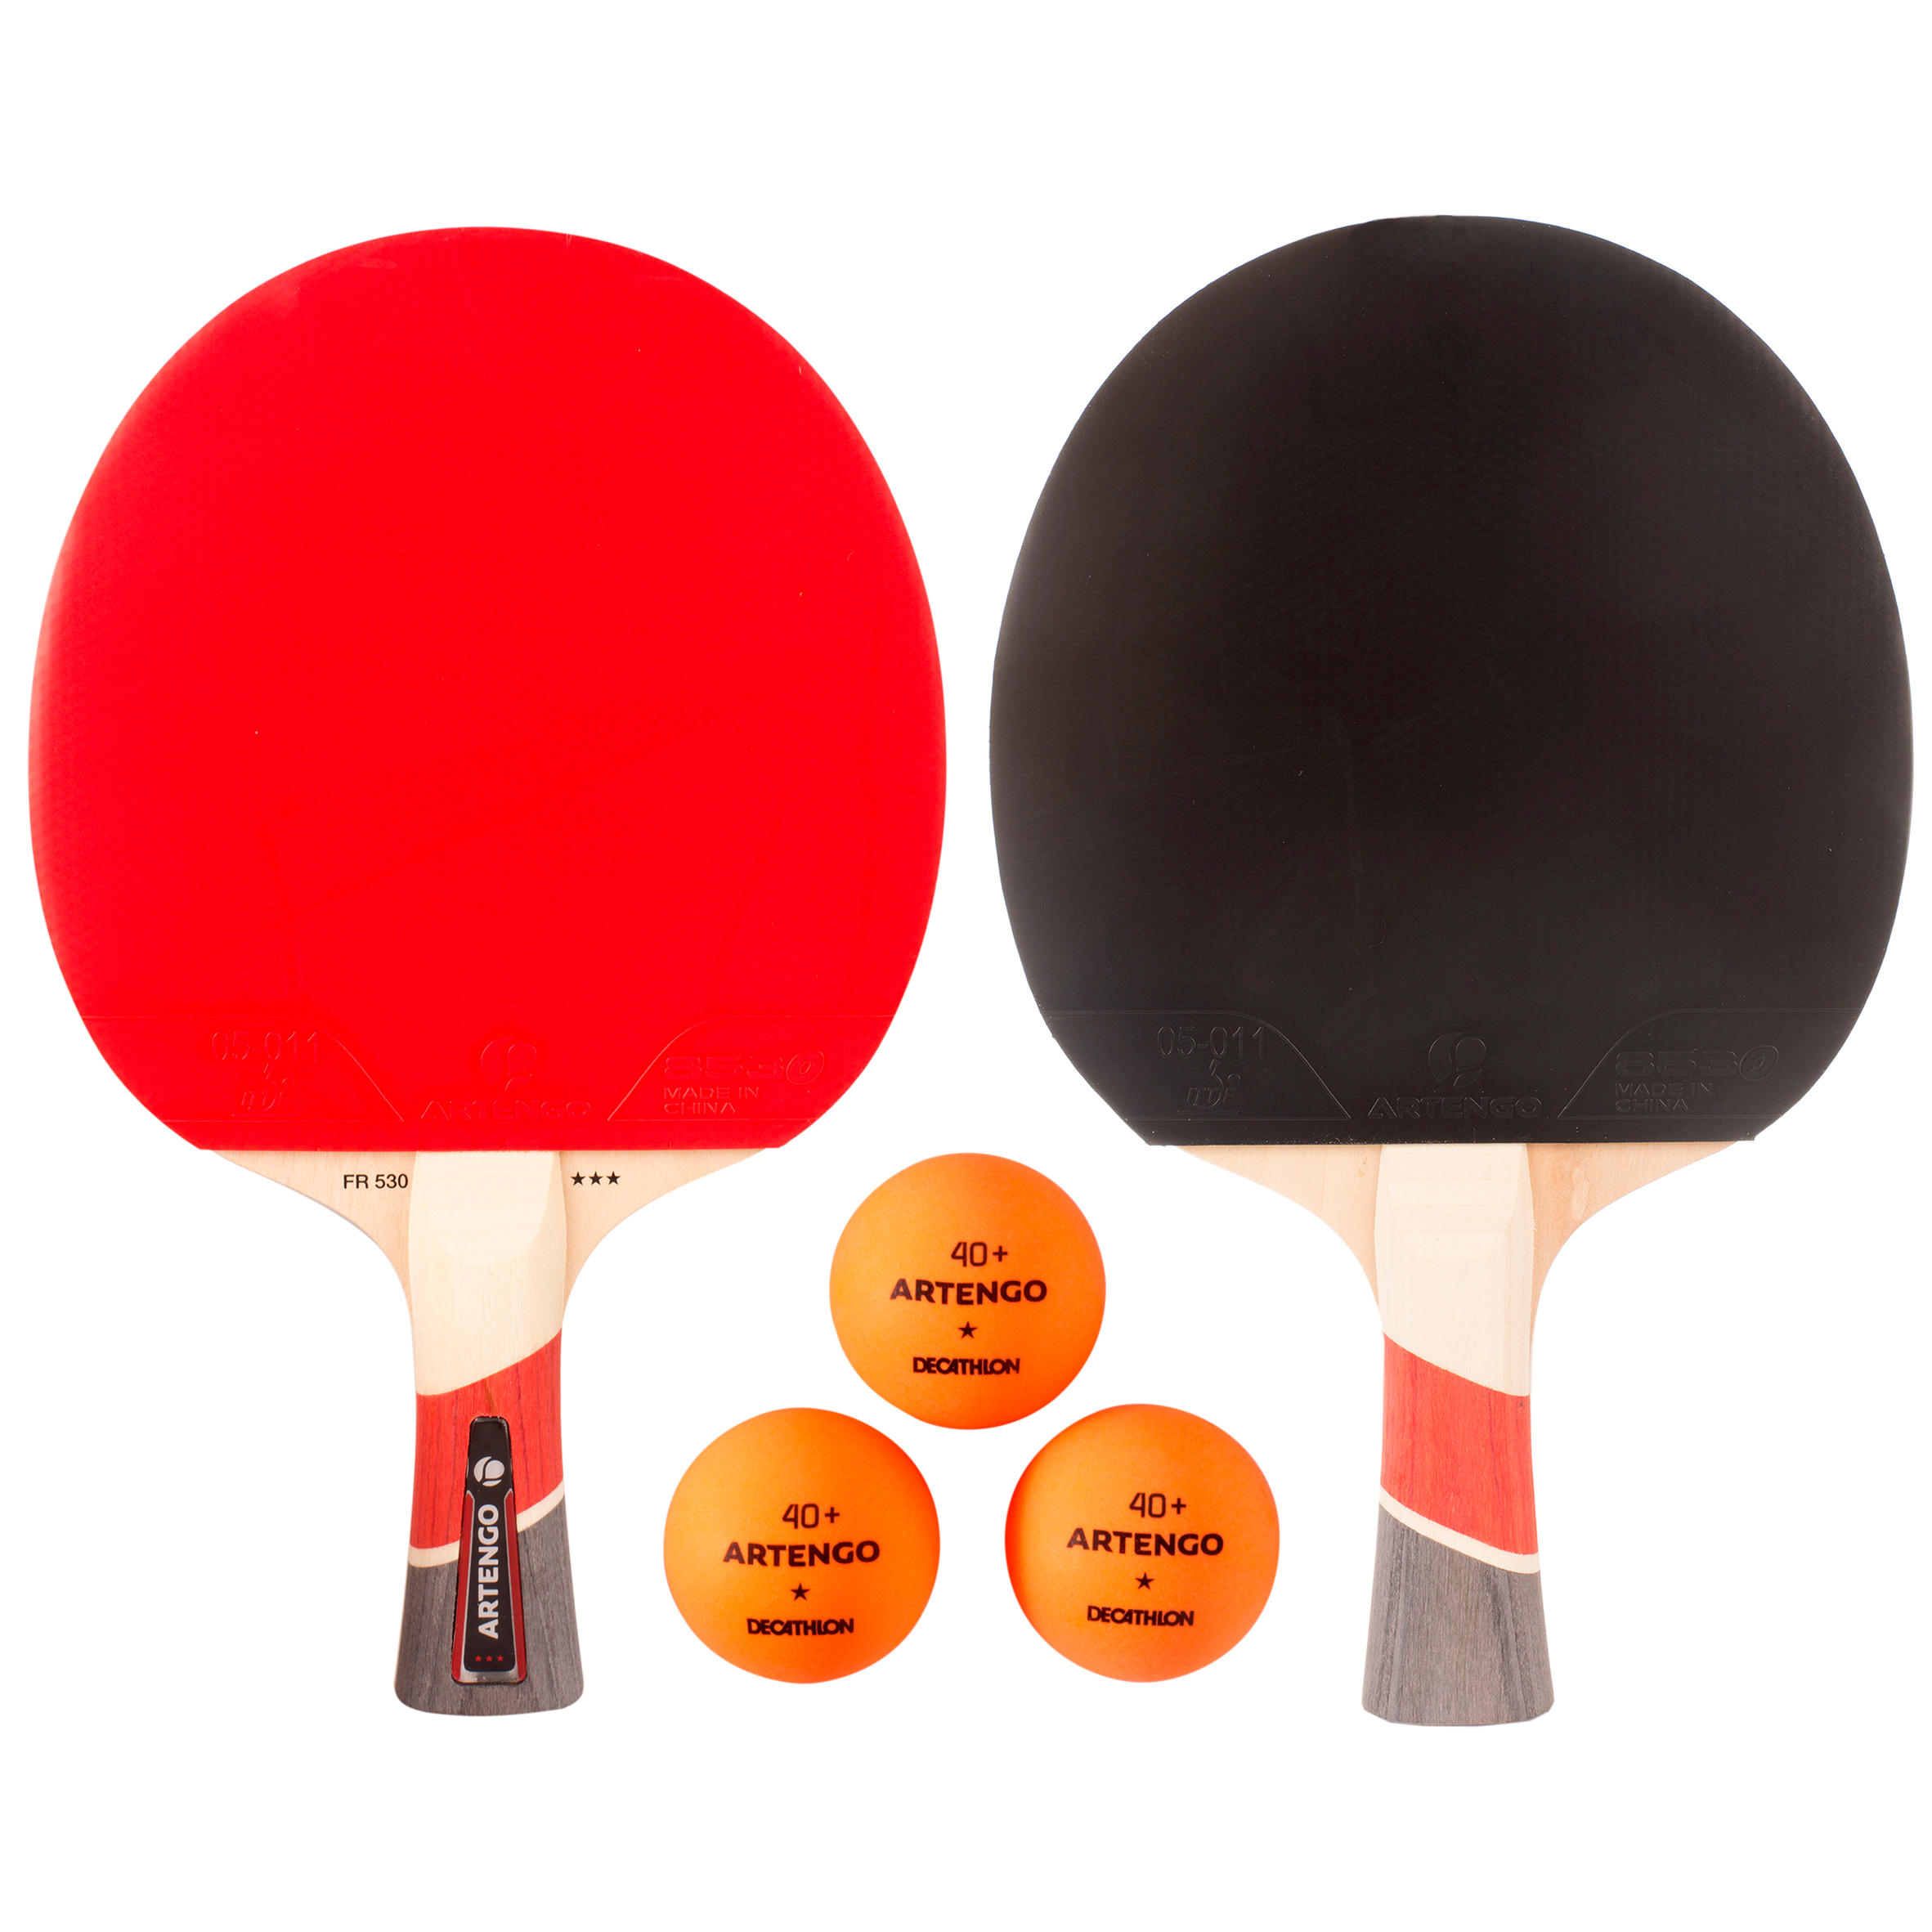 Ensemble de 2 raquettes de tennis de table FR 530 et 3 balles FB 830+